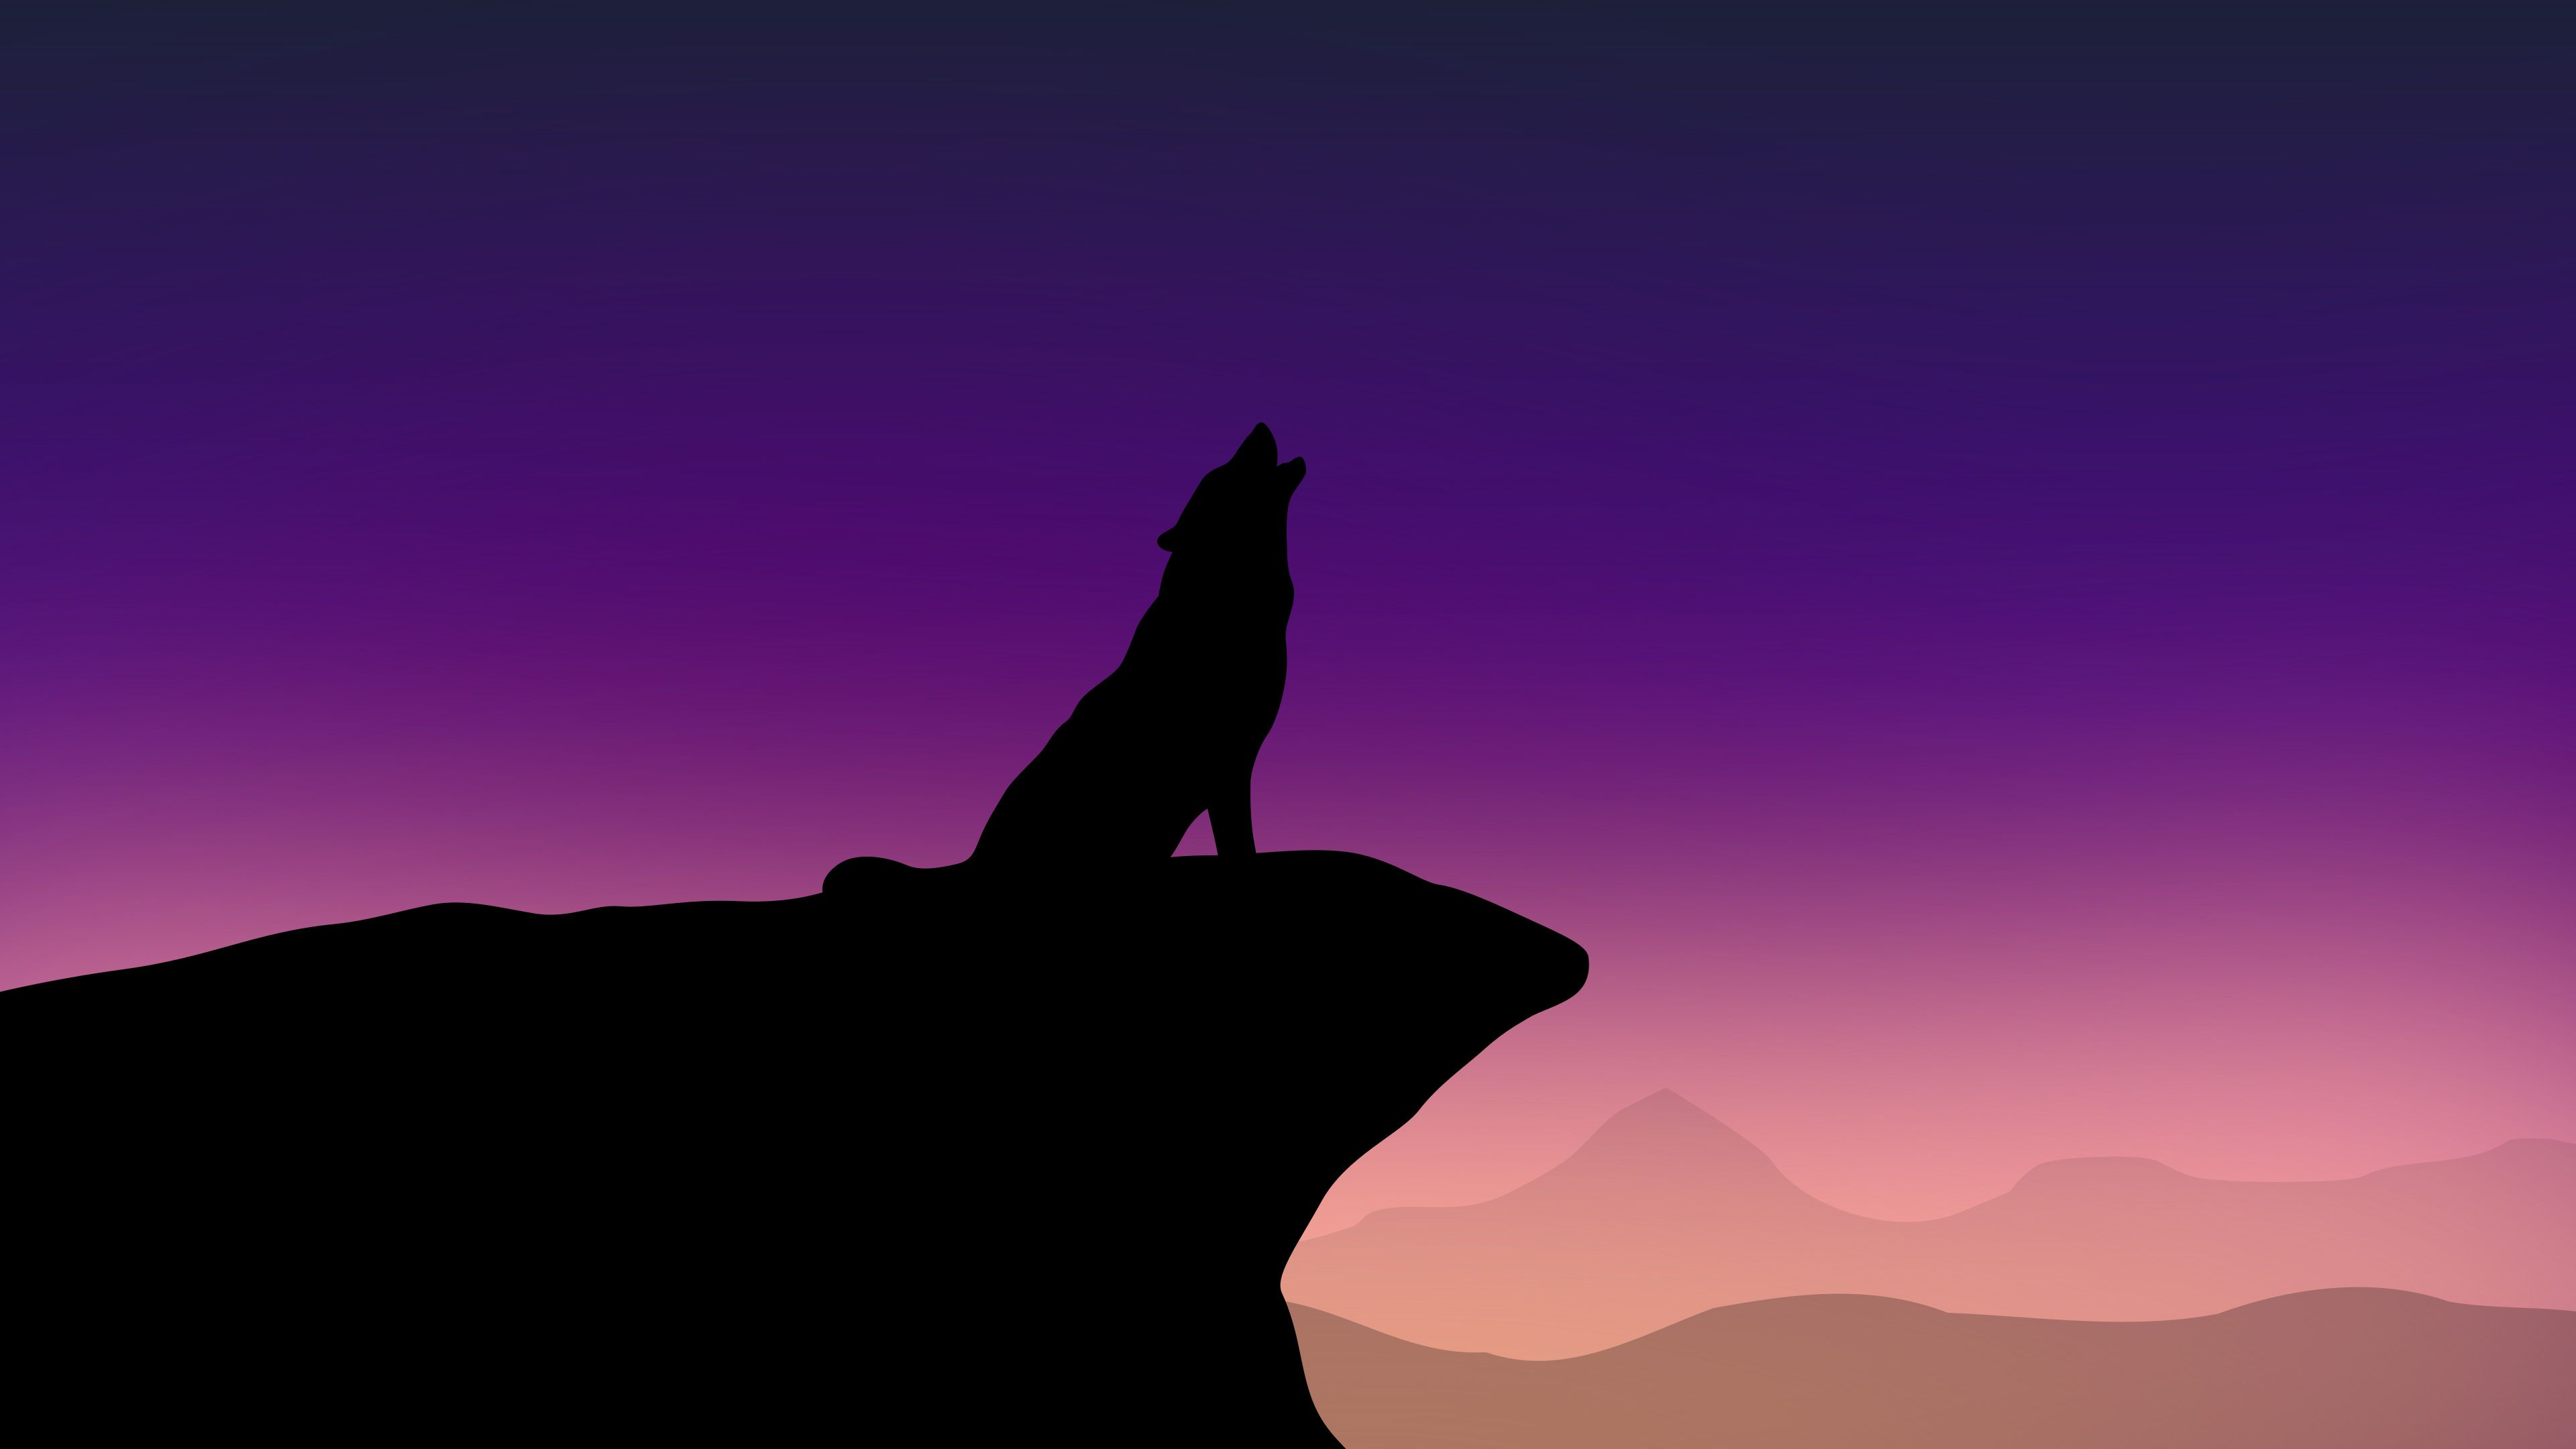 2160x3840 Howling Wolf Minimalism 4k Sony Xperia X,XZ,Z5 Premium HD 4k Wallpapers, Image, Backgrounds, Photos and Pictures